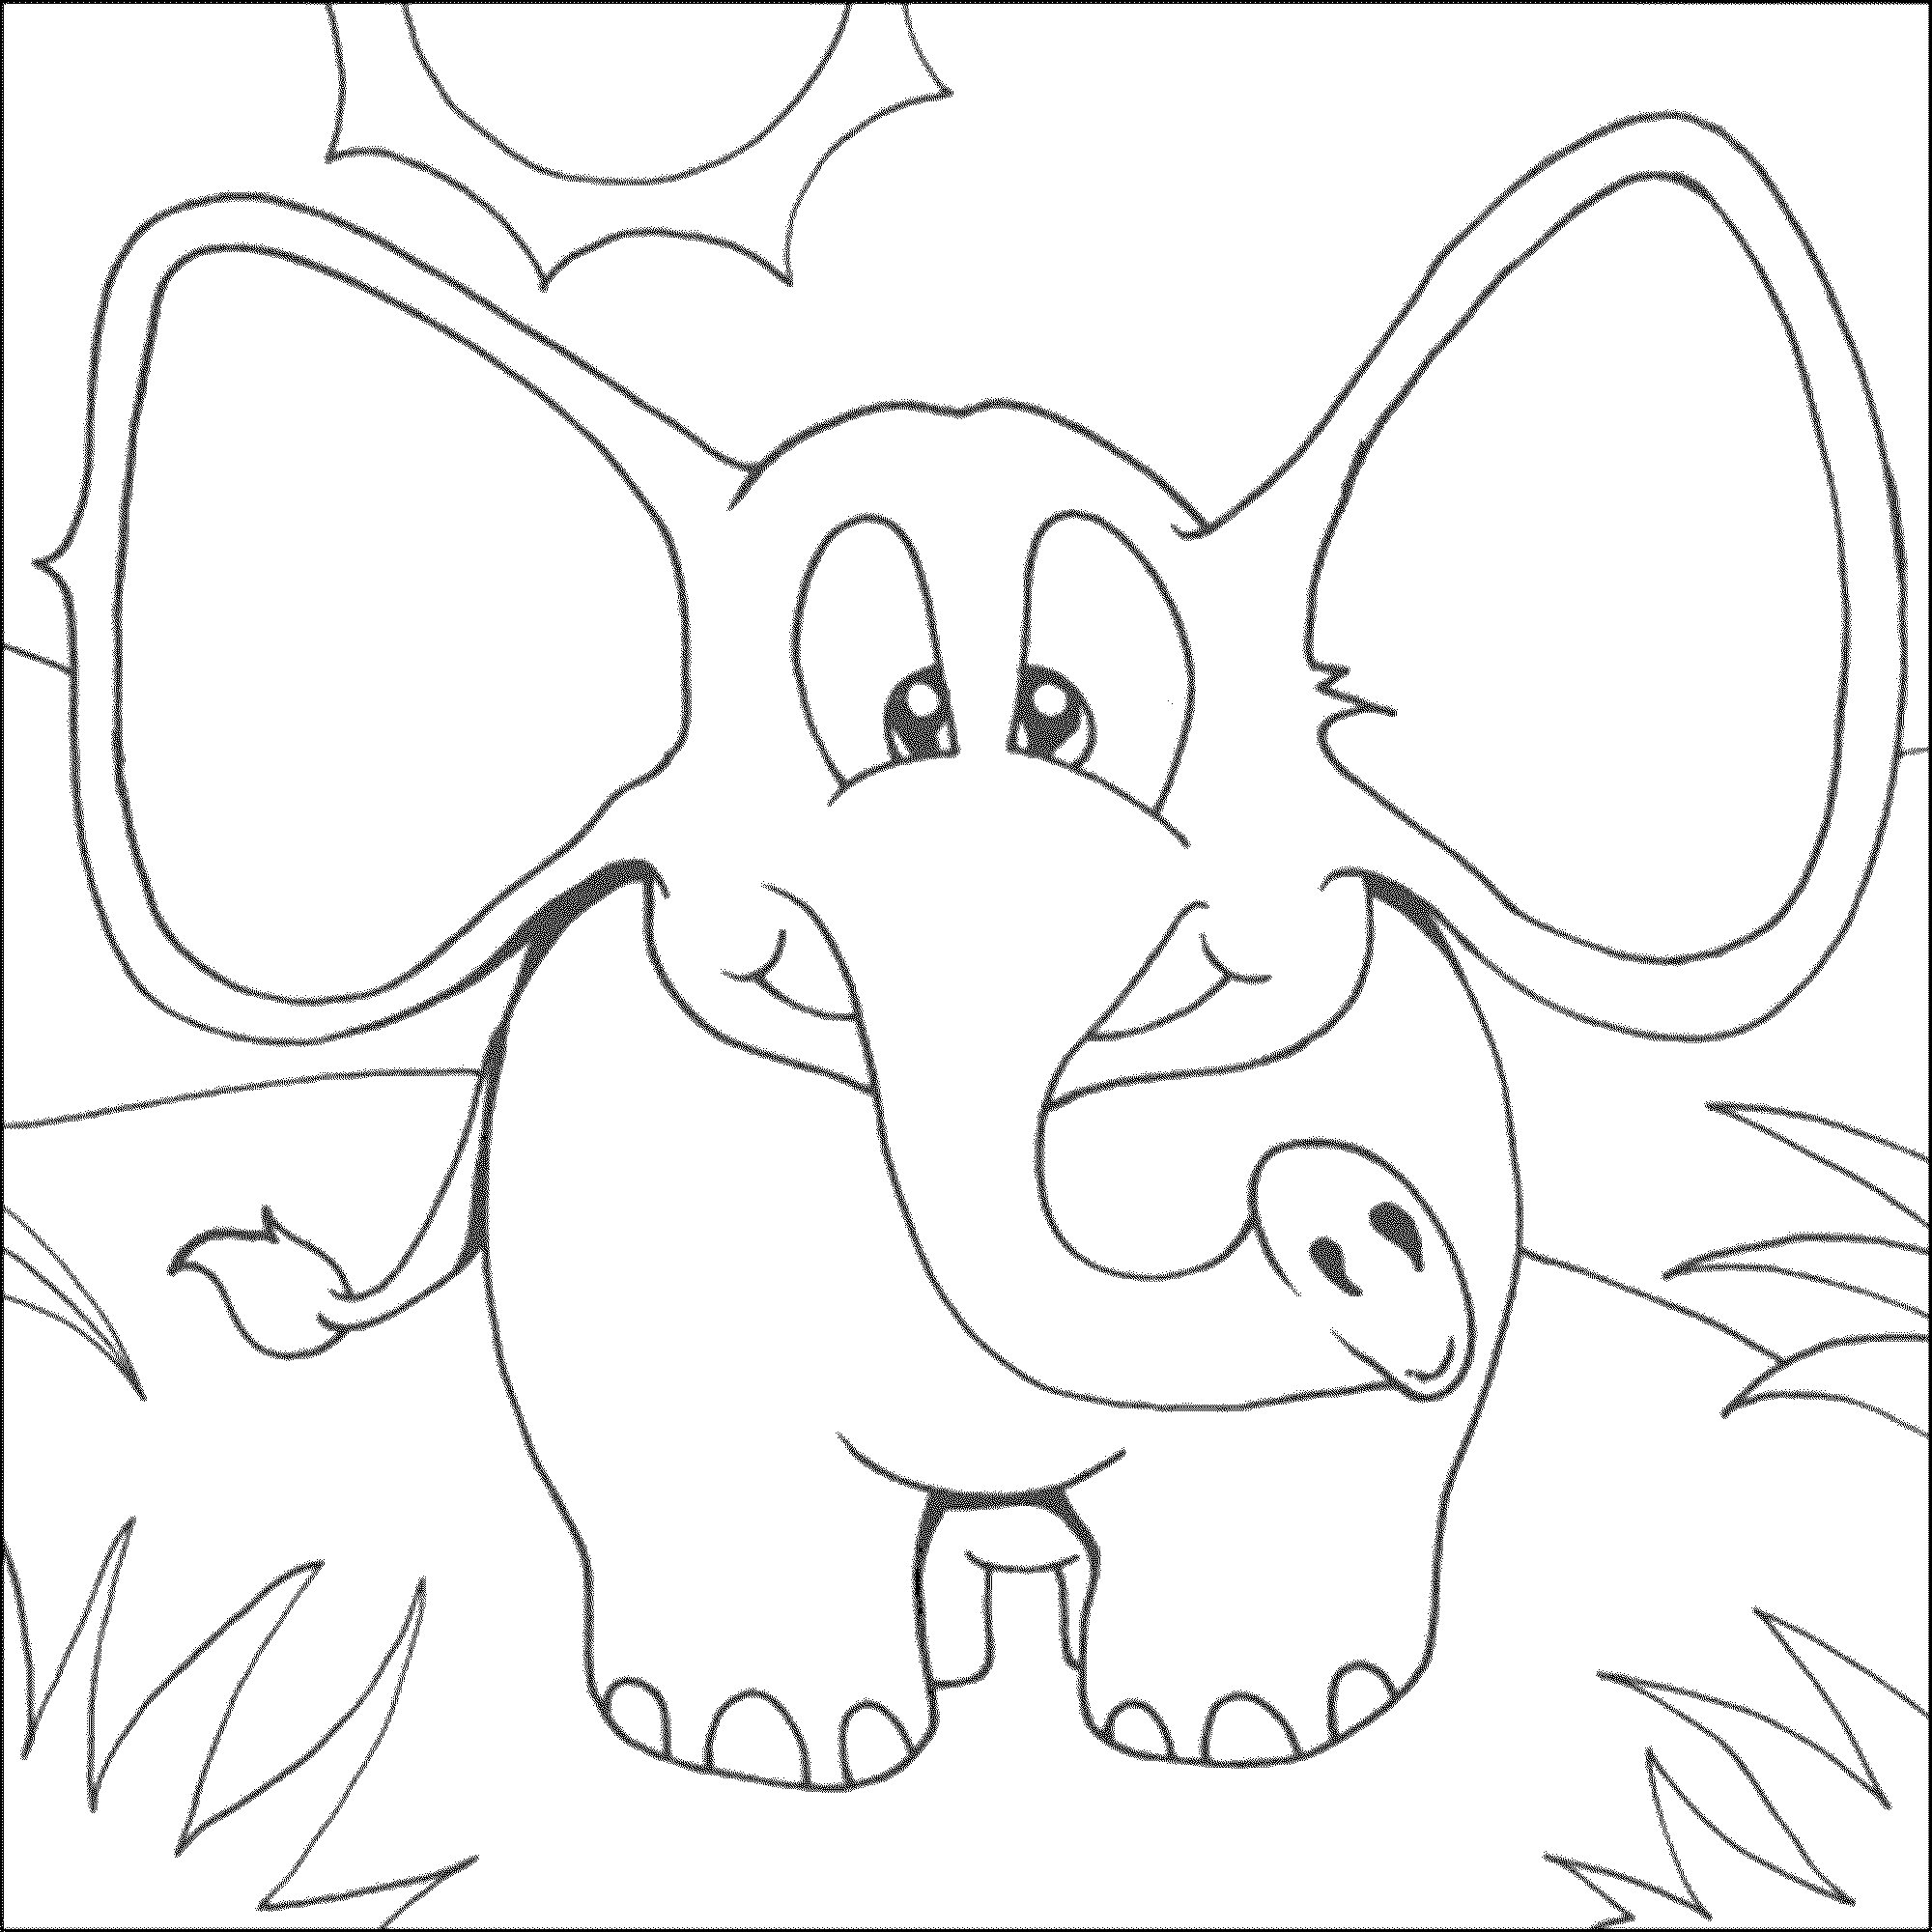 colouring pages of elephant print download teaching kids through elephant coloring colouring of pages elephant